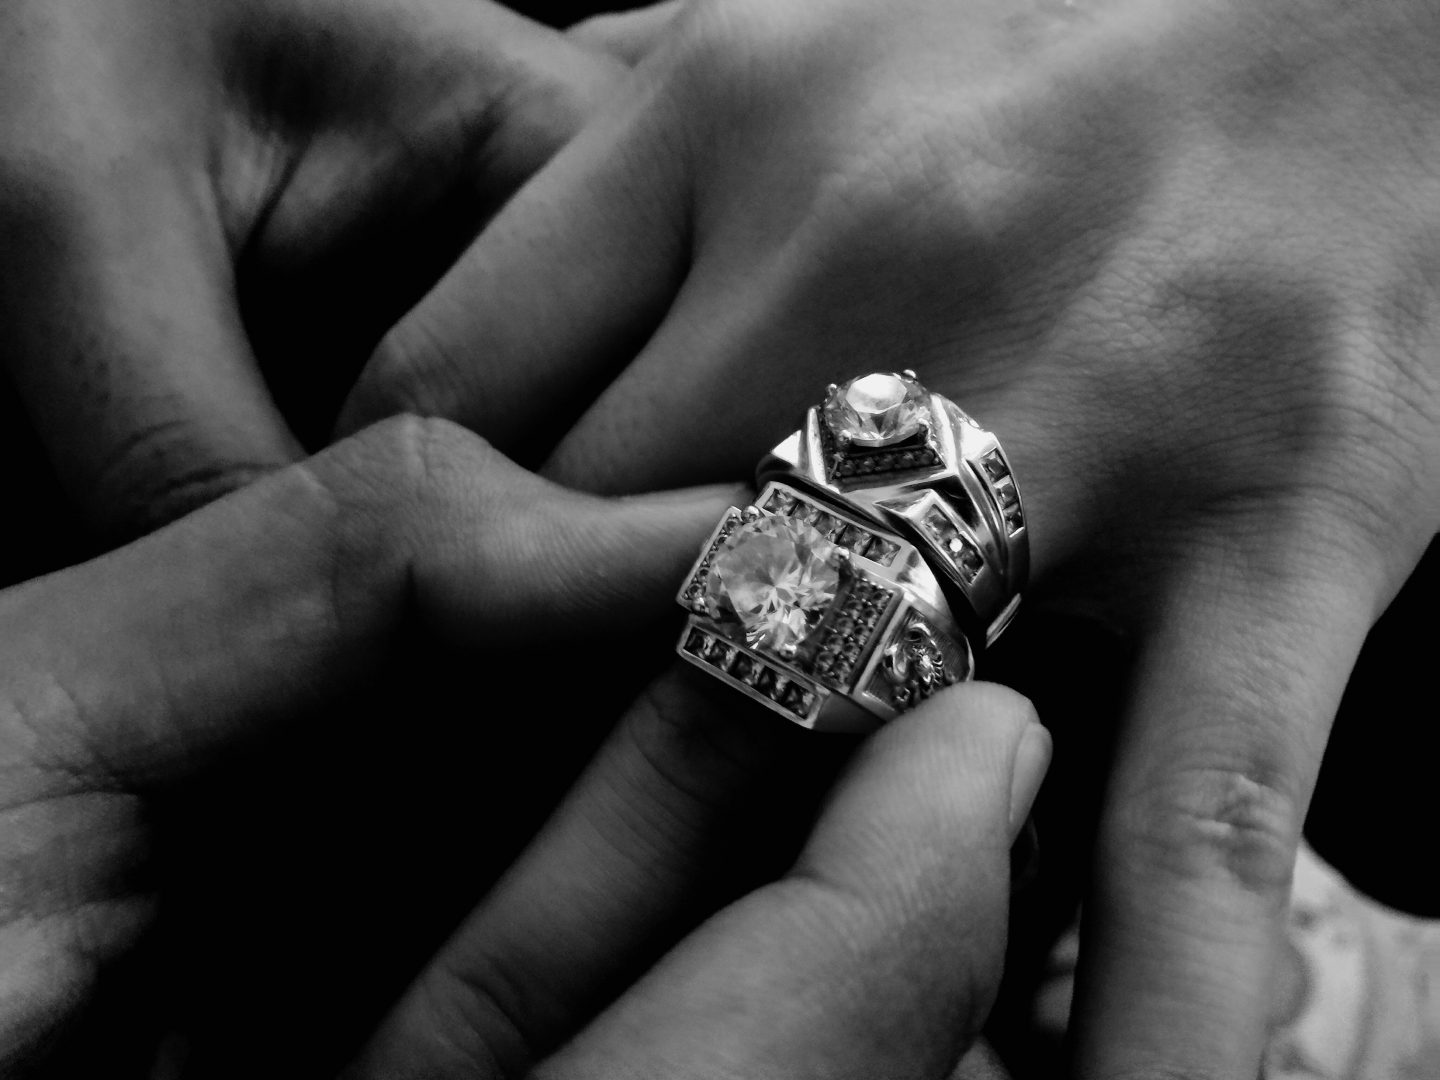 Apparently, Huge Diamond Engagement Rings Are Officially Outdated